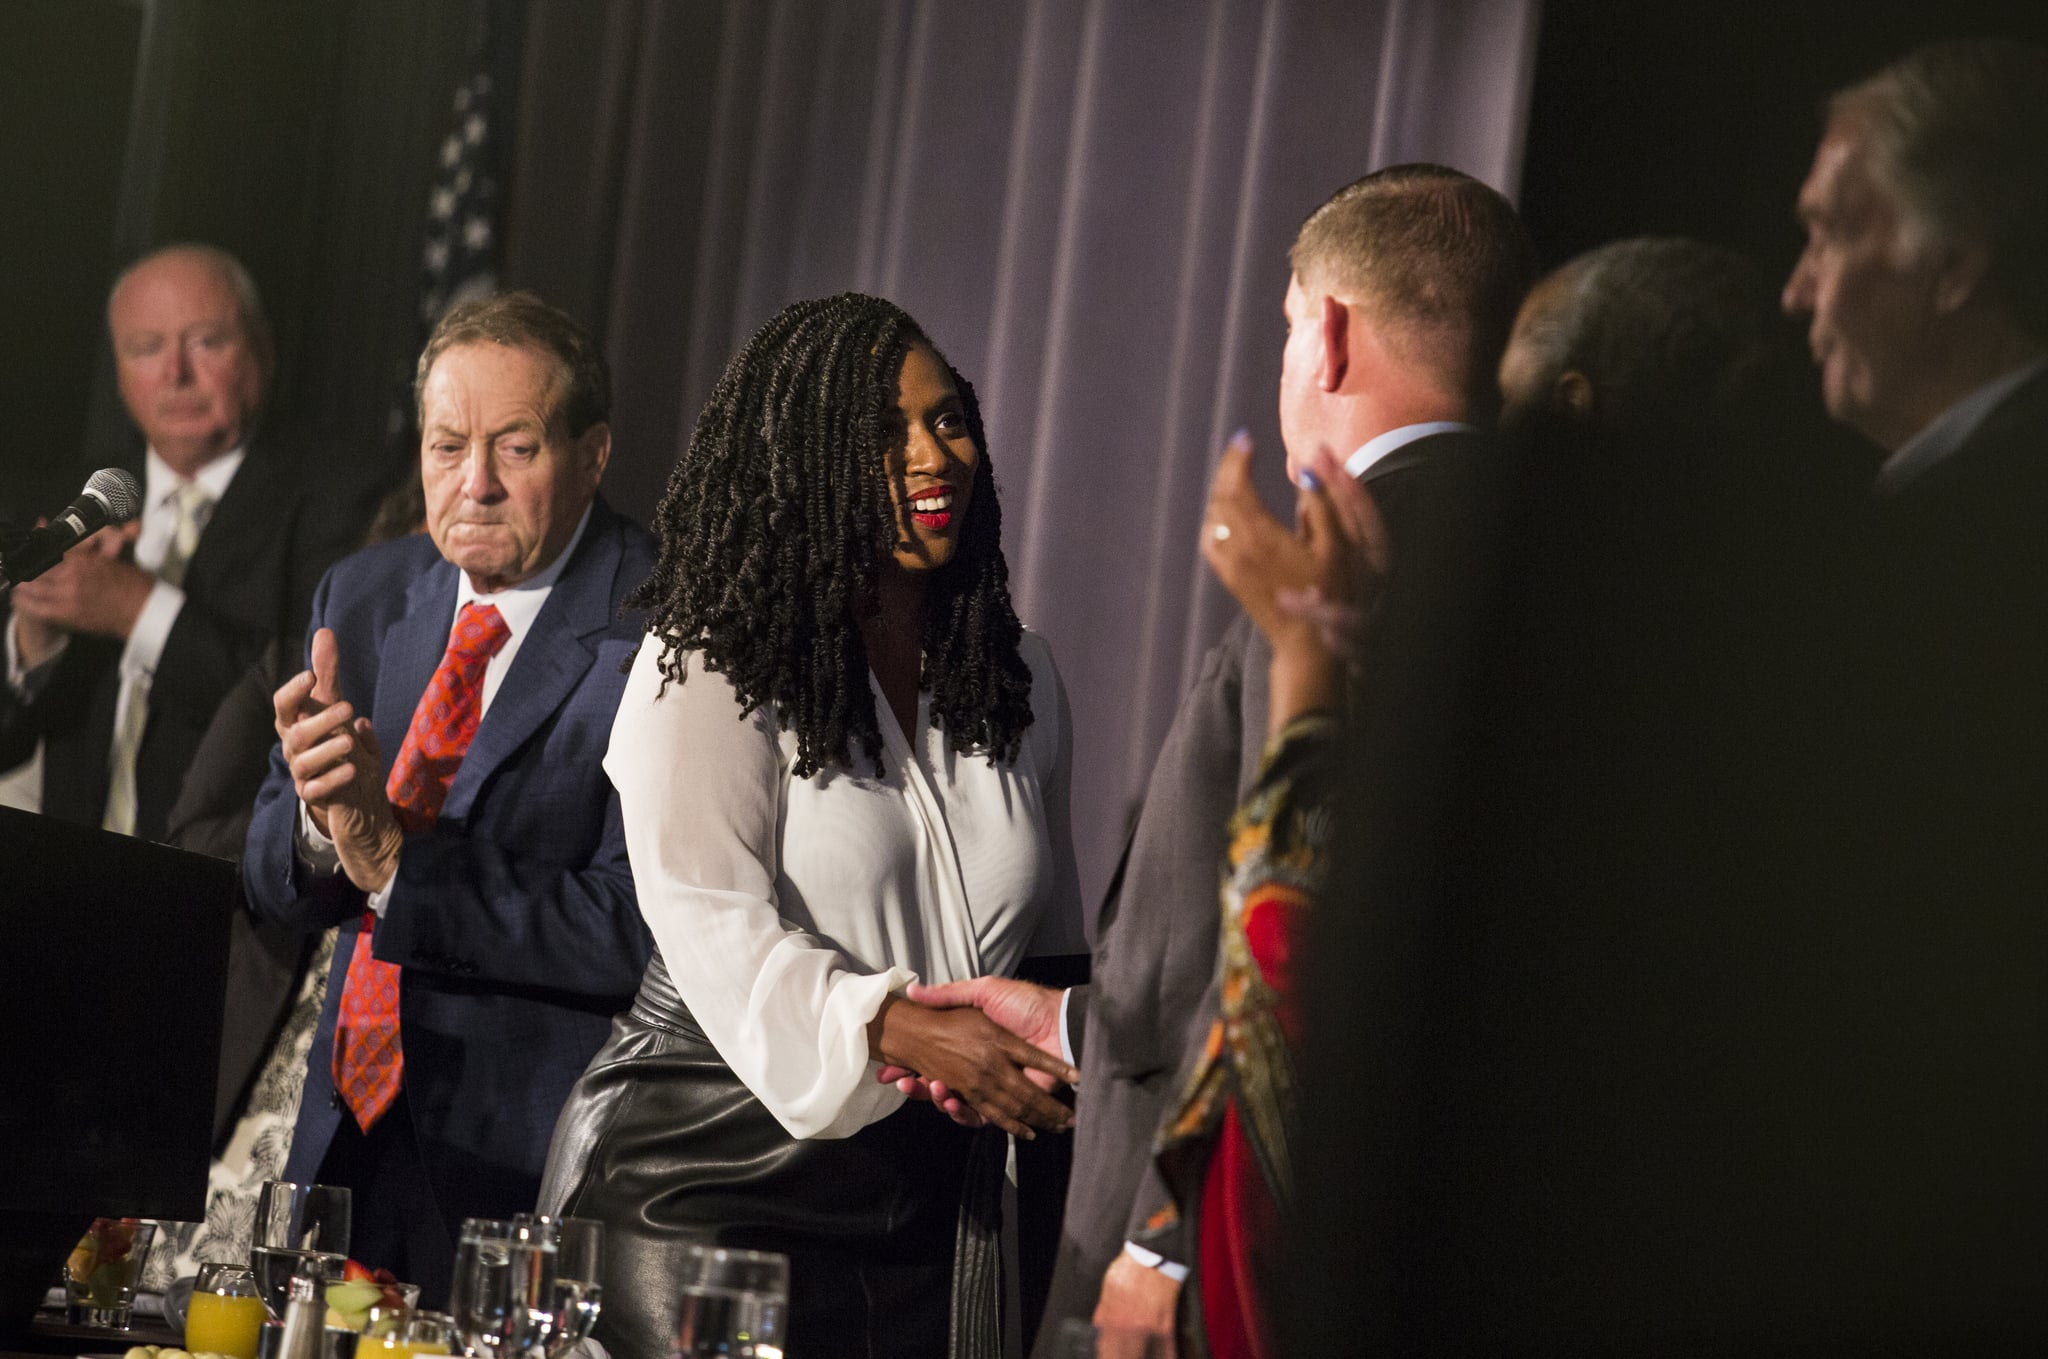 BOSTON, MA - SEPTEMBER 2: U.S. Representative Ayanna Pressley shakes hands with Boston Mayor Martin J. Walsh at the Annual Greater Boston Labour Council Breakfast in Boston on Sep. 2, 2019. Over 600 union leaders, activists and elected officials were in attendance. (Photo by Erin Clark for The Boston Globe via Getty Images)